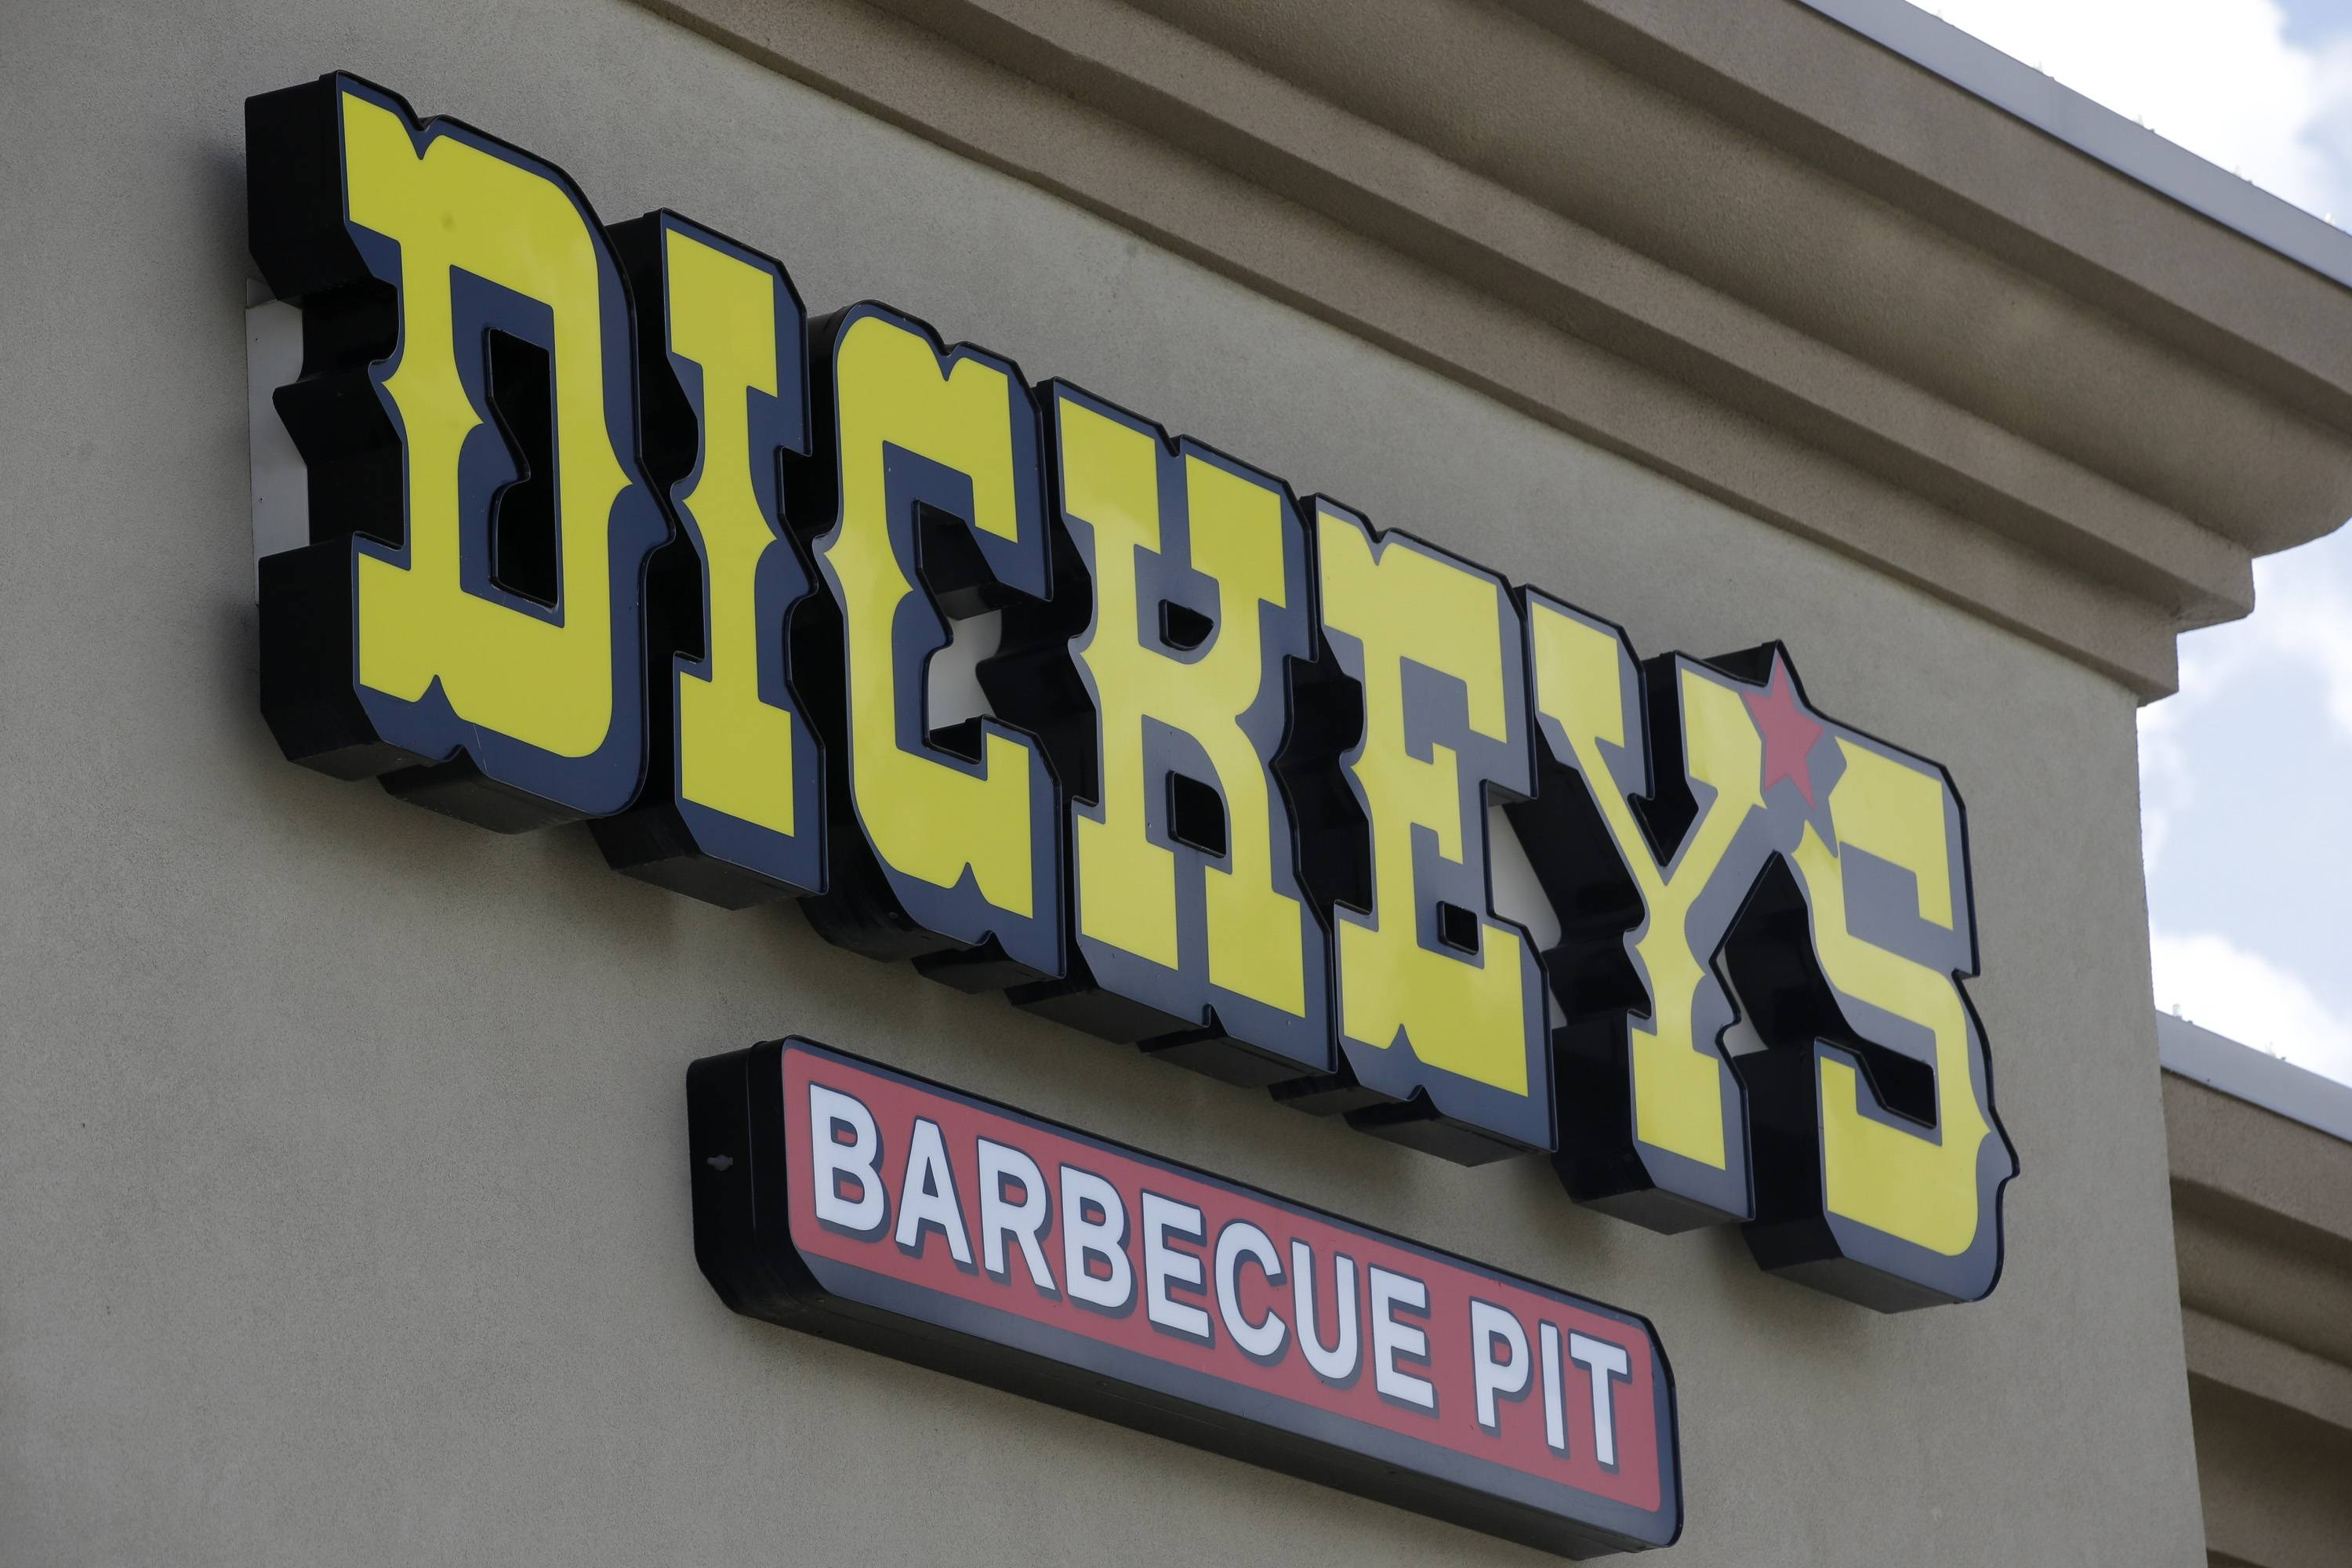 A sign at Dickey's Barbecue Pit Thursday in South Jordan, Utah. Police say a woman was in extremely critical condition after drinking sweet tea laced with an industrial cleaning chemical at the restaurant.